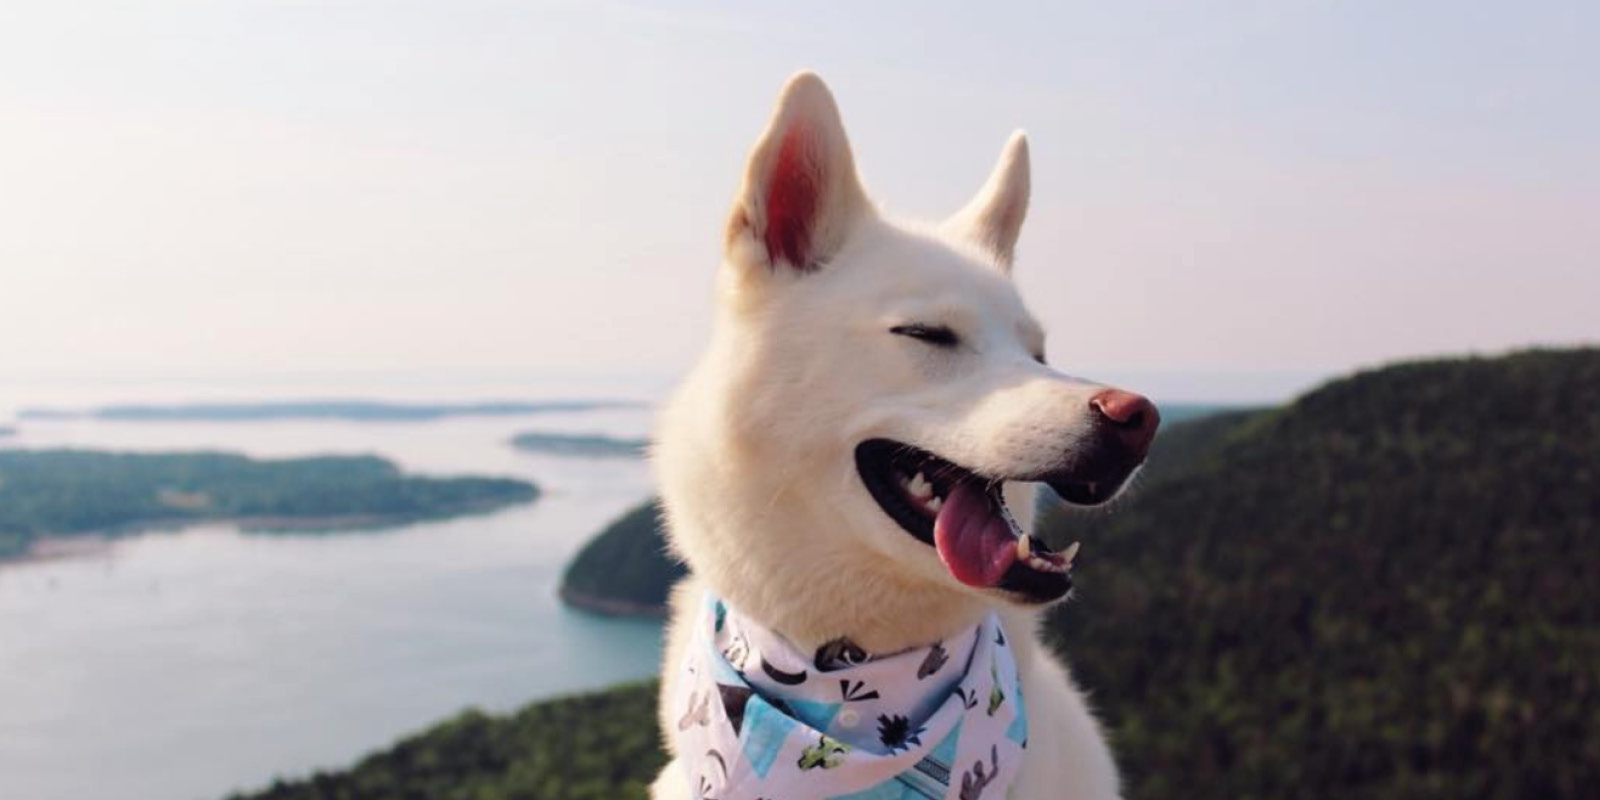 Acadia National Park visited by @zerothewhitehusky